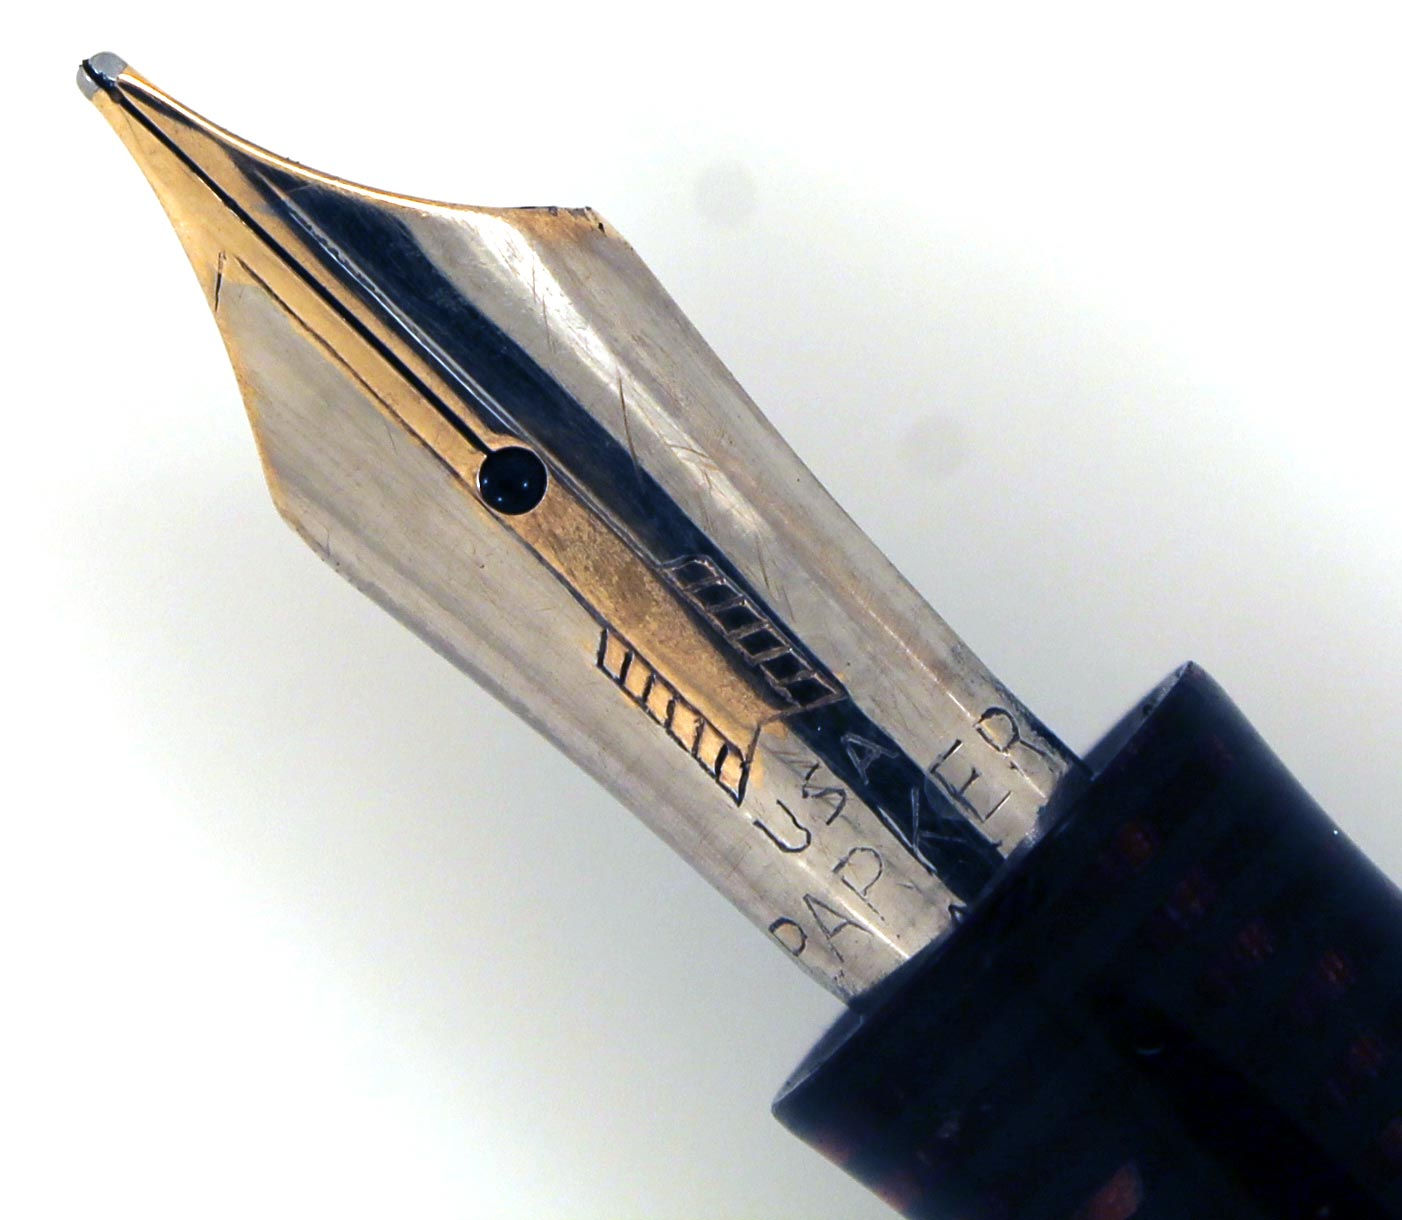 RESTORED CIRCA 1933-1938 FIRST GENERATION PARKER BURGUNDY PEARL DOUBLE JEWEL VACUMATIC STANDARD SIZE FOUNTAIN PEN